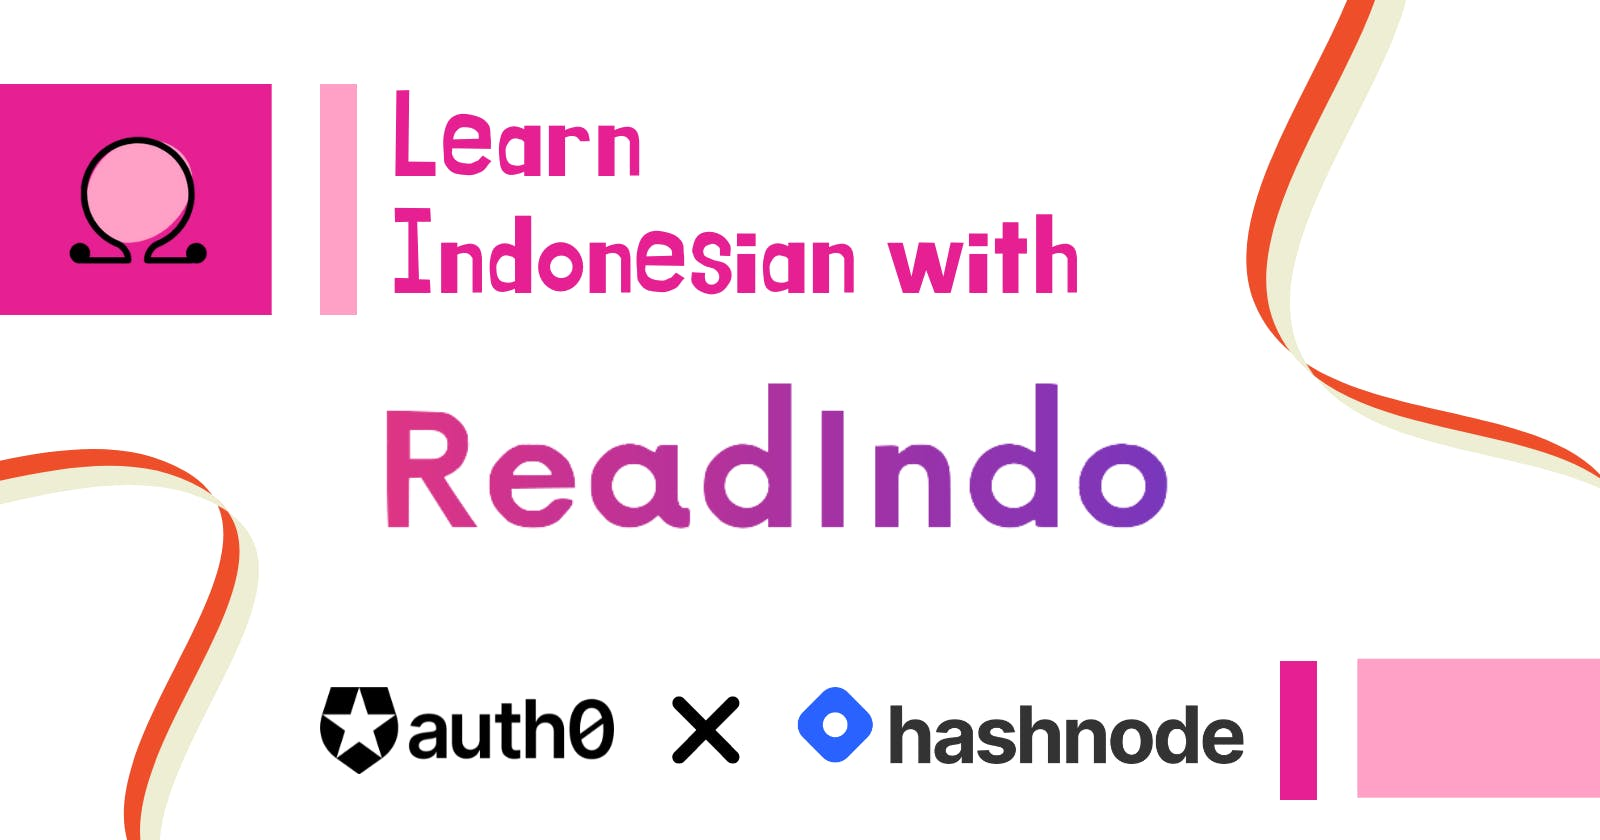 Learn Indonesian with ReadIndo!